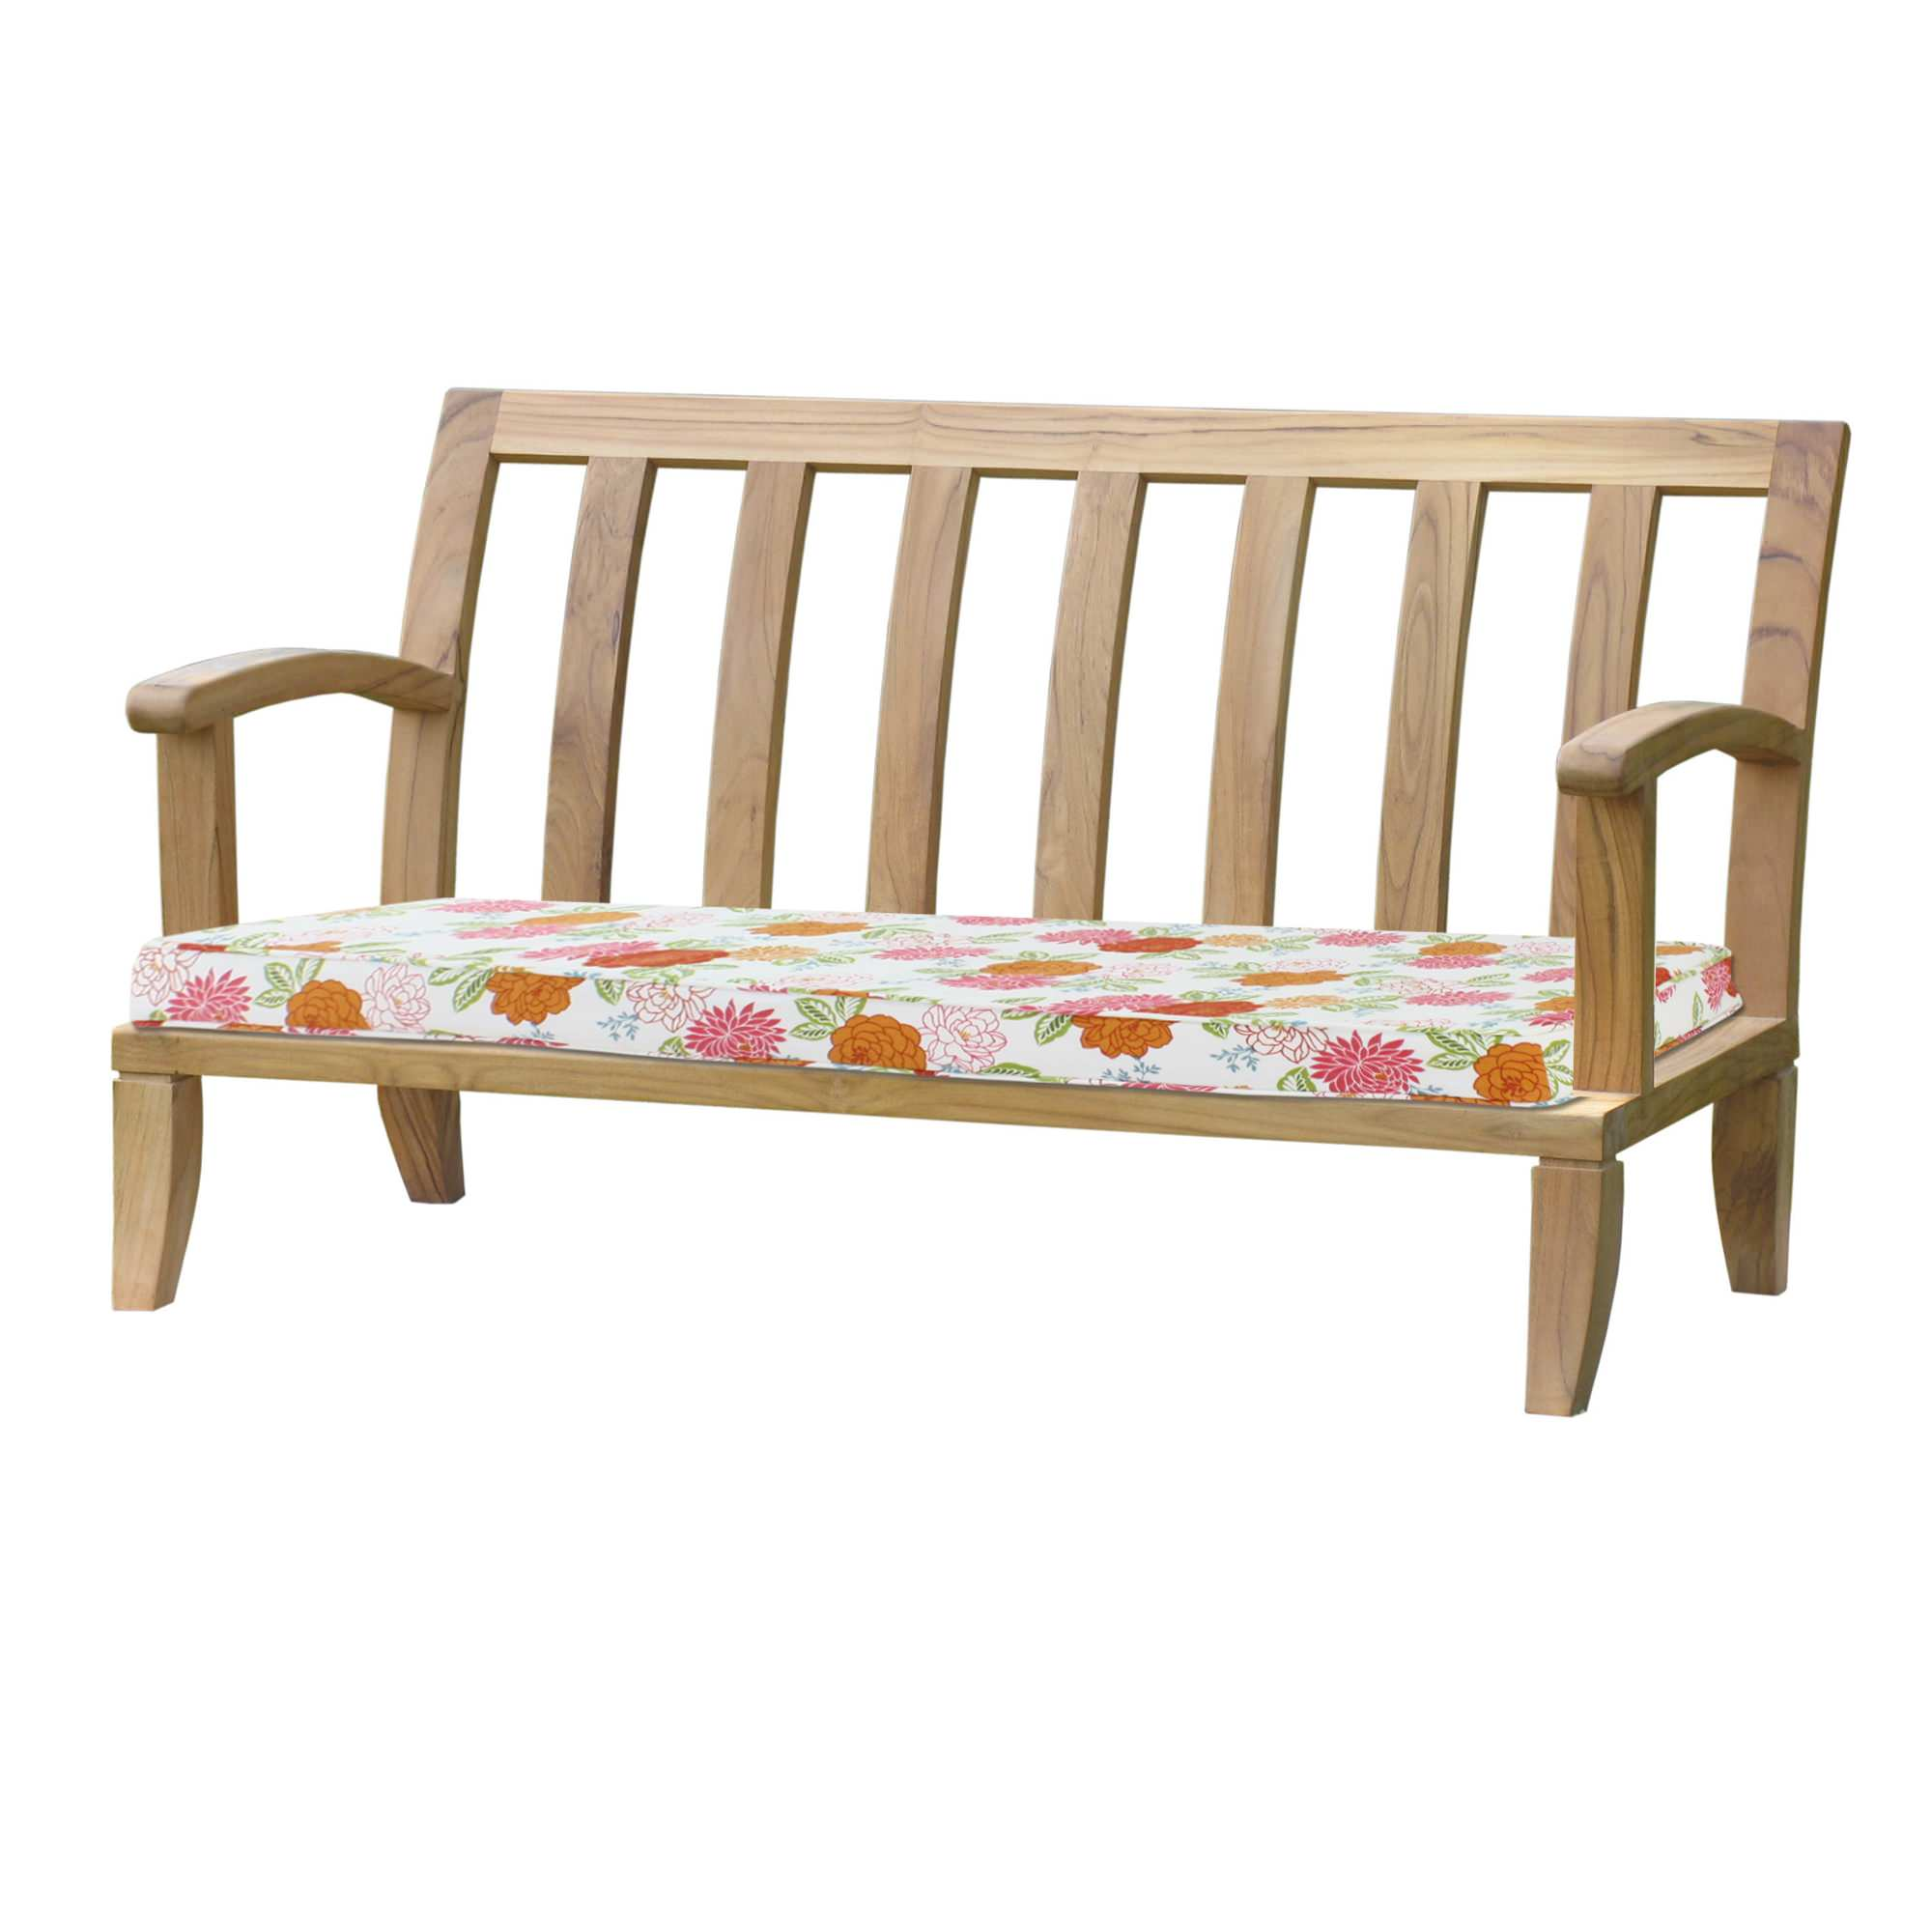 indoor shipping cushion fabric sunbrella garden product bench with today home traditional solid overstock outdoor free